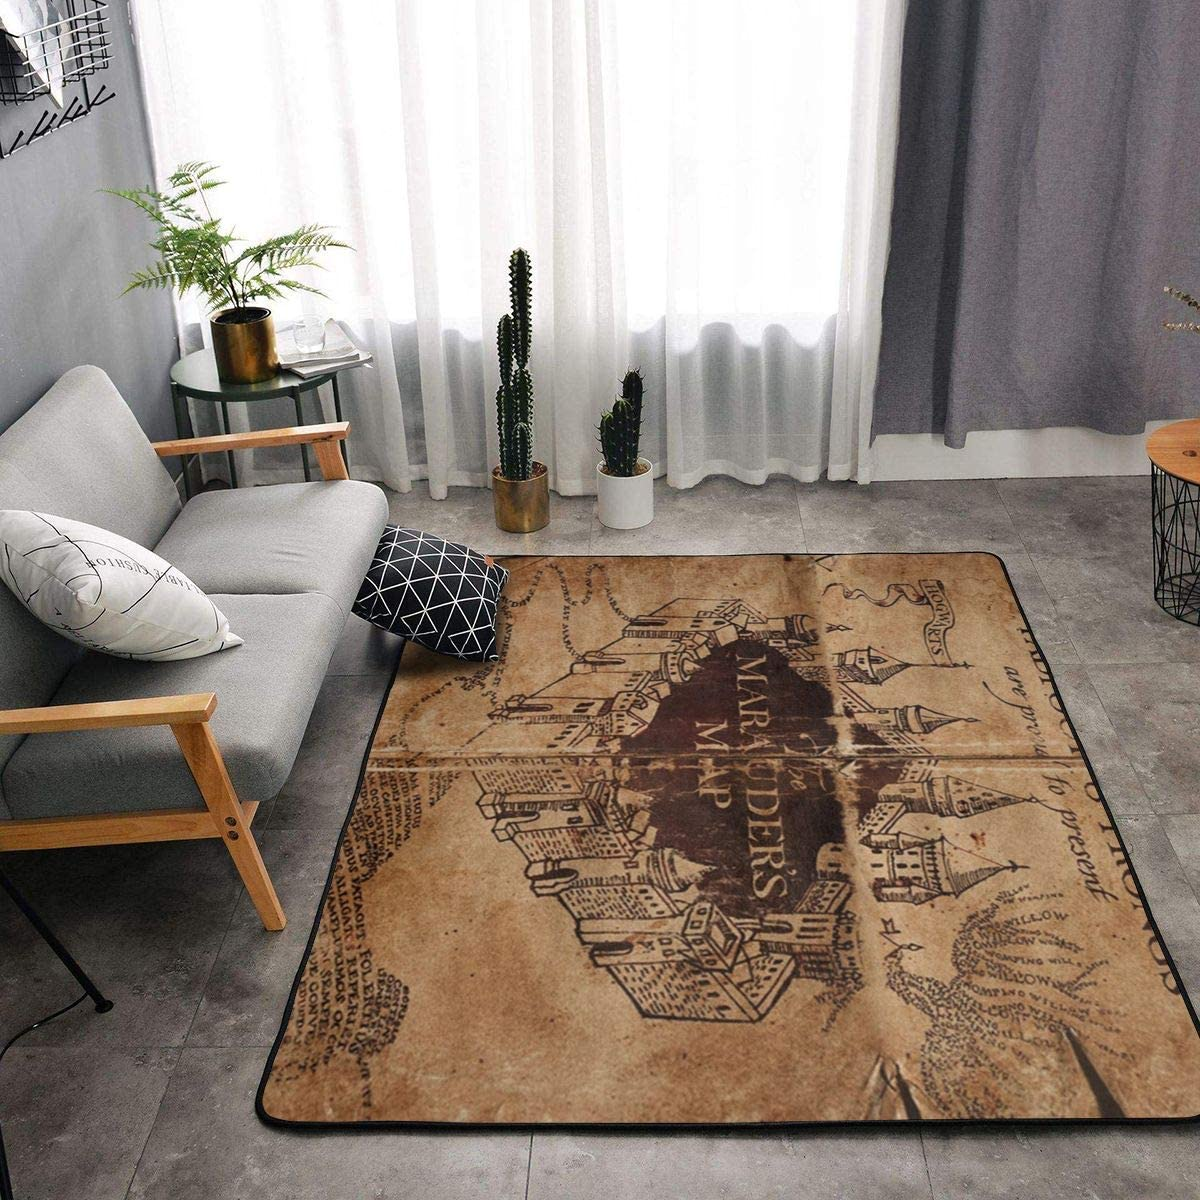 NiYoung I Like Exercise Marauders Map Kitchen Rugs Memory Foam Doormat Floor Mat with Non-Slip Rubber Backing, Quick Dry Tub Shower Bath Rug Standing Mat Home Art Ultra-Soft Standing Mat